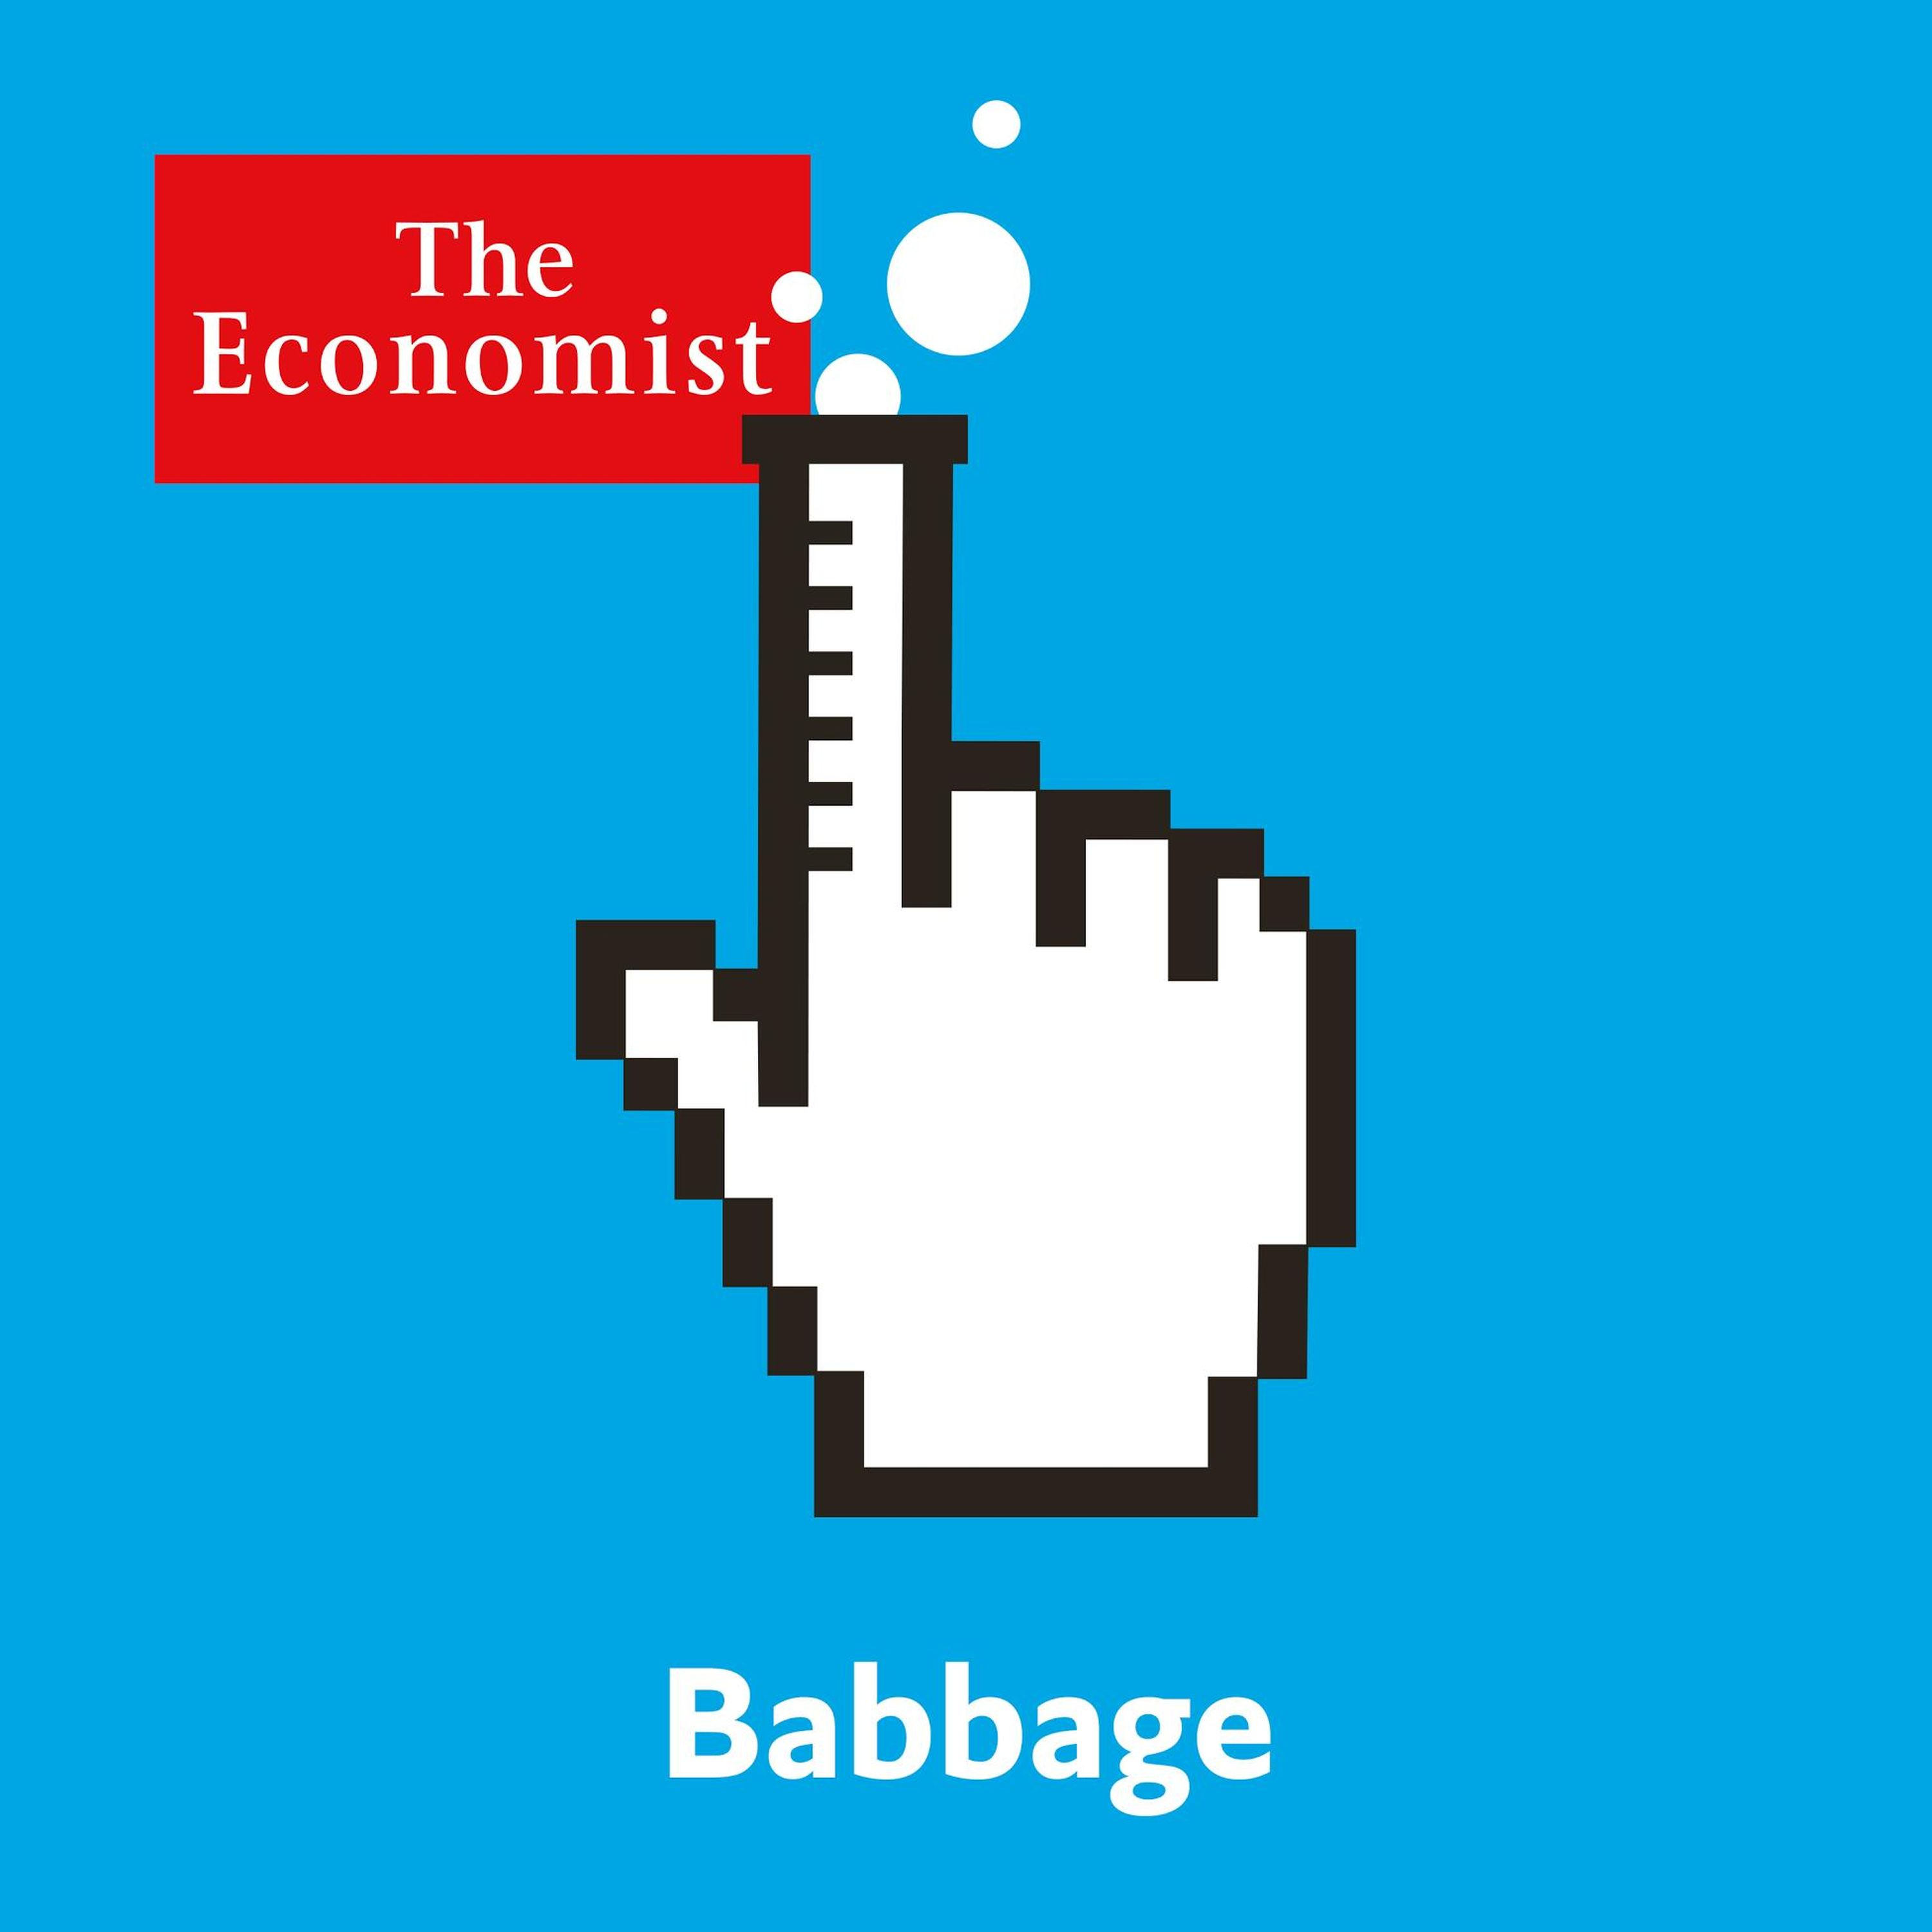 Babbage: Innovation around innovation